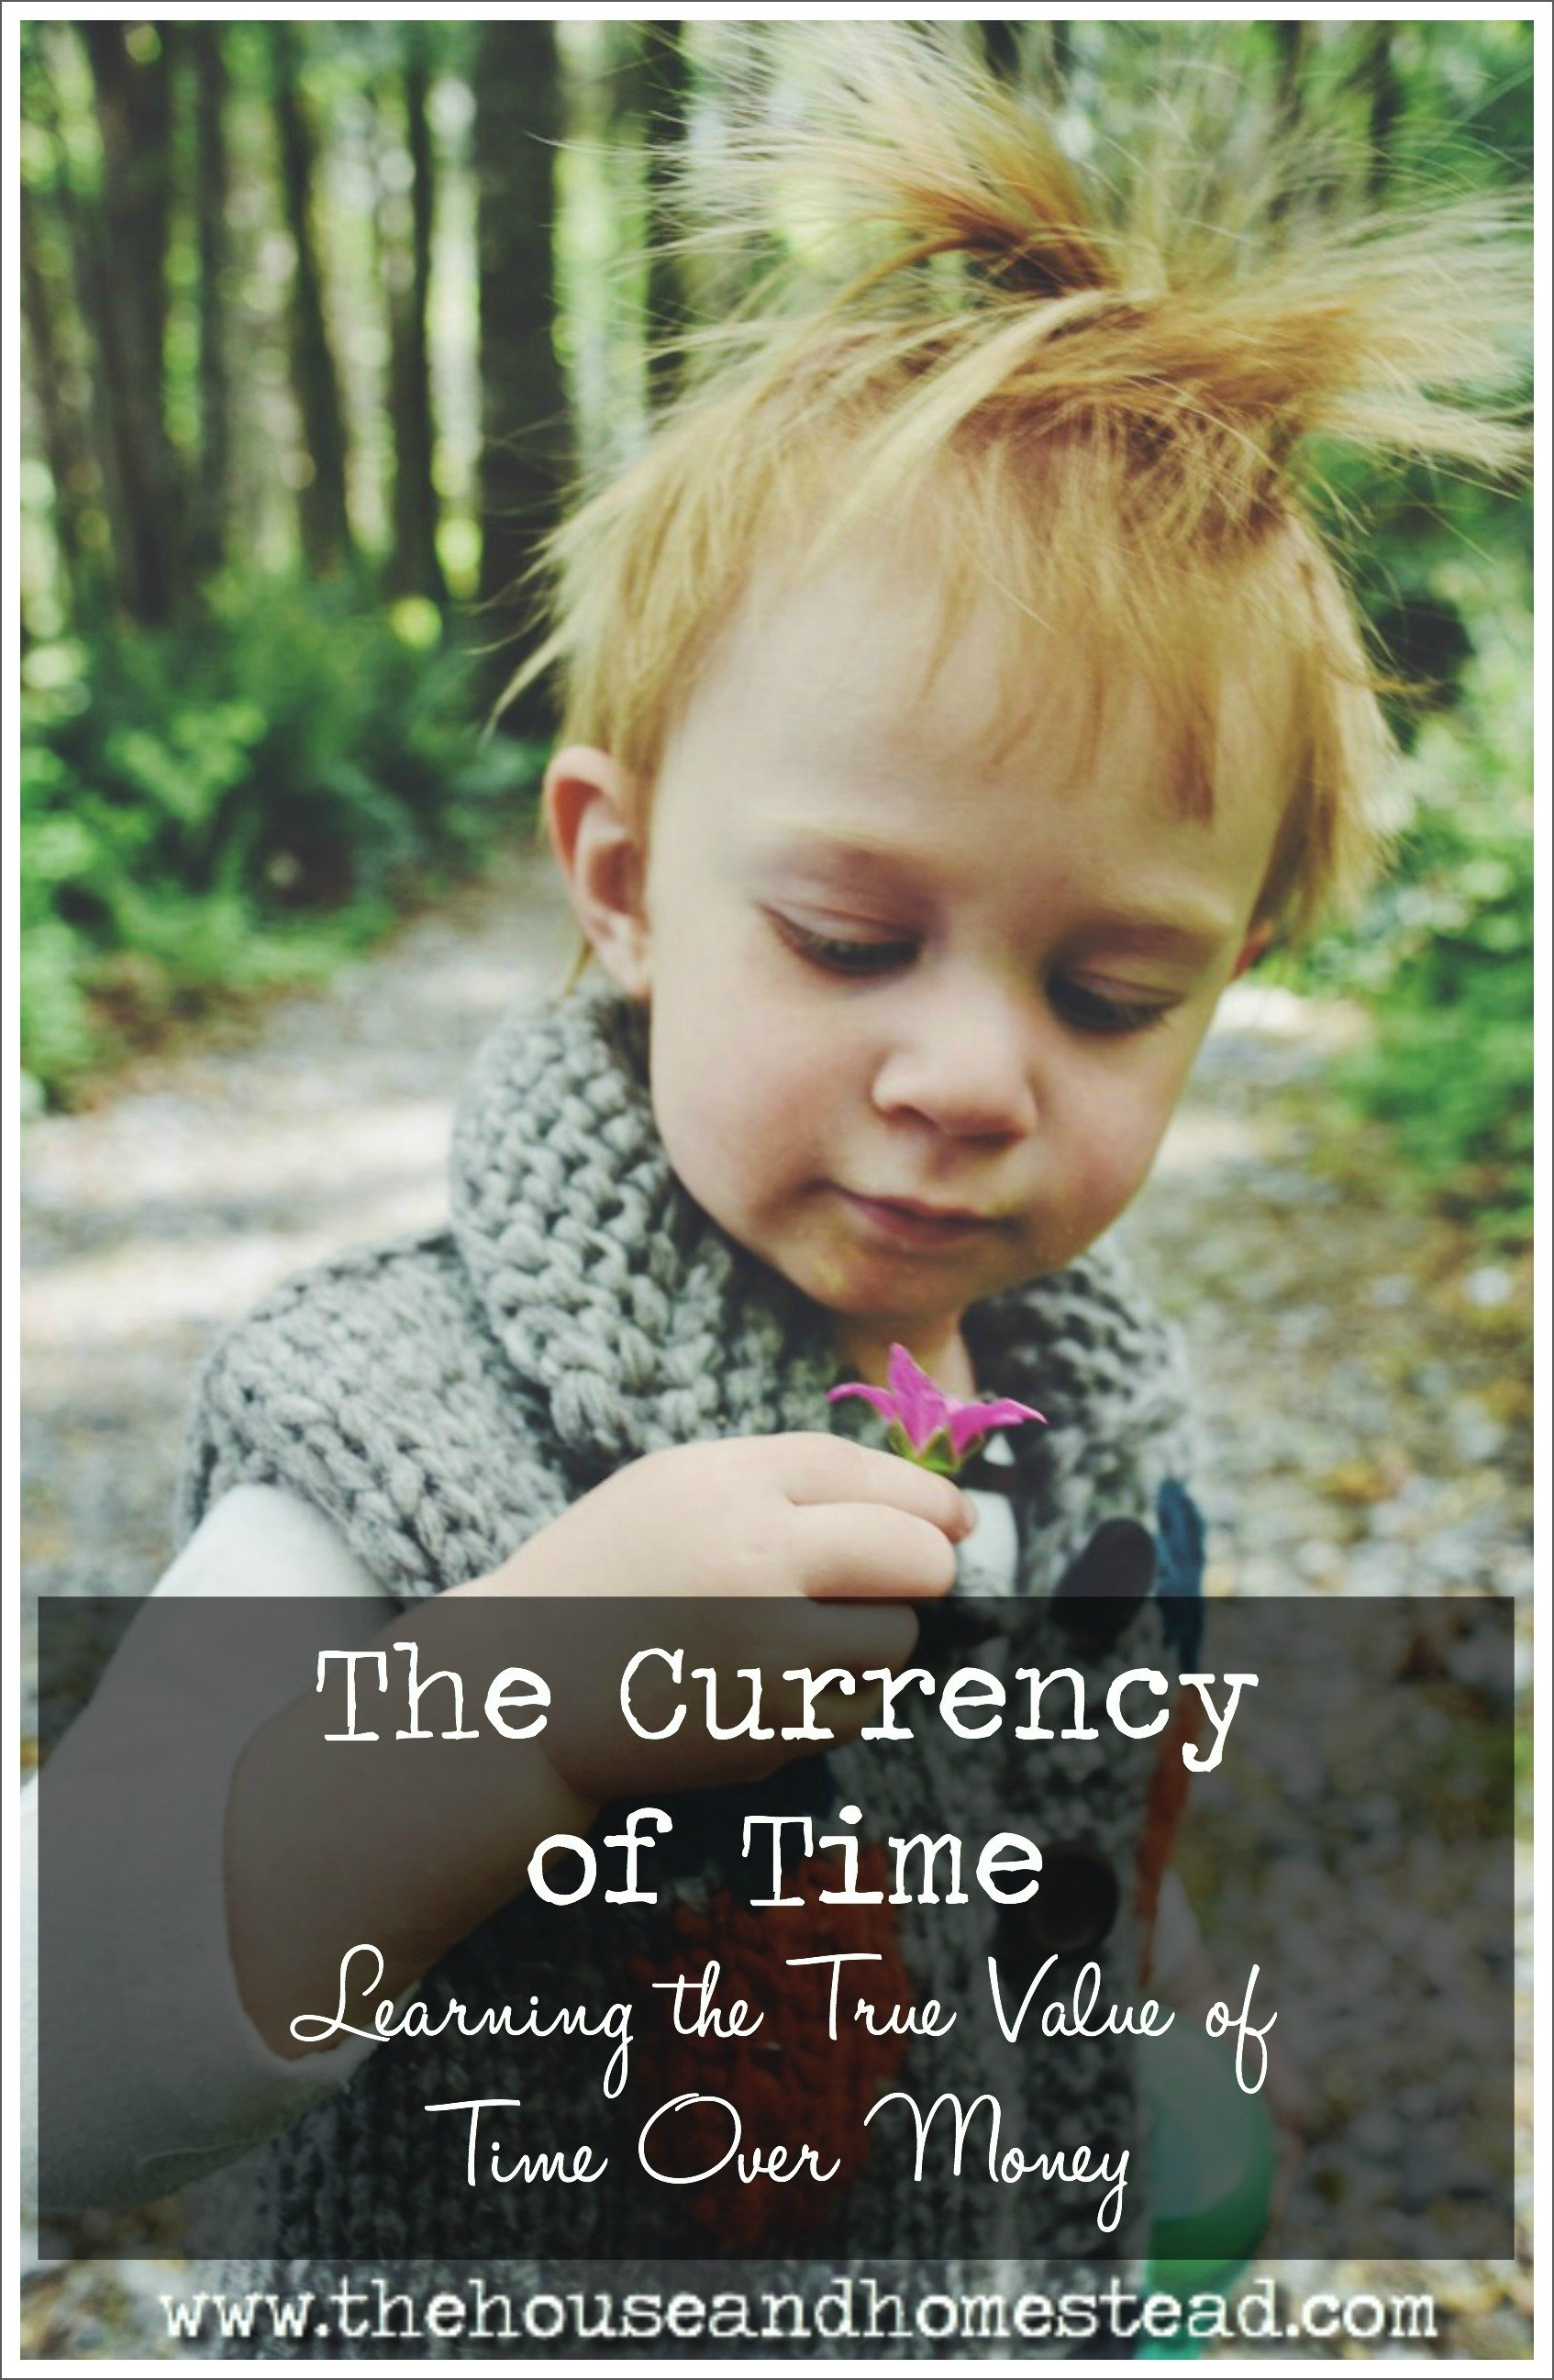 Time is a currency, just like money. But time is more valuable than money. I share my personal story of how a job loss led to discovering the true riches in life through learning the true value of time and all that it can buy.